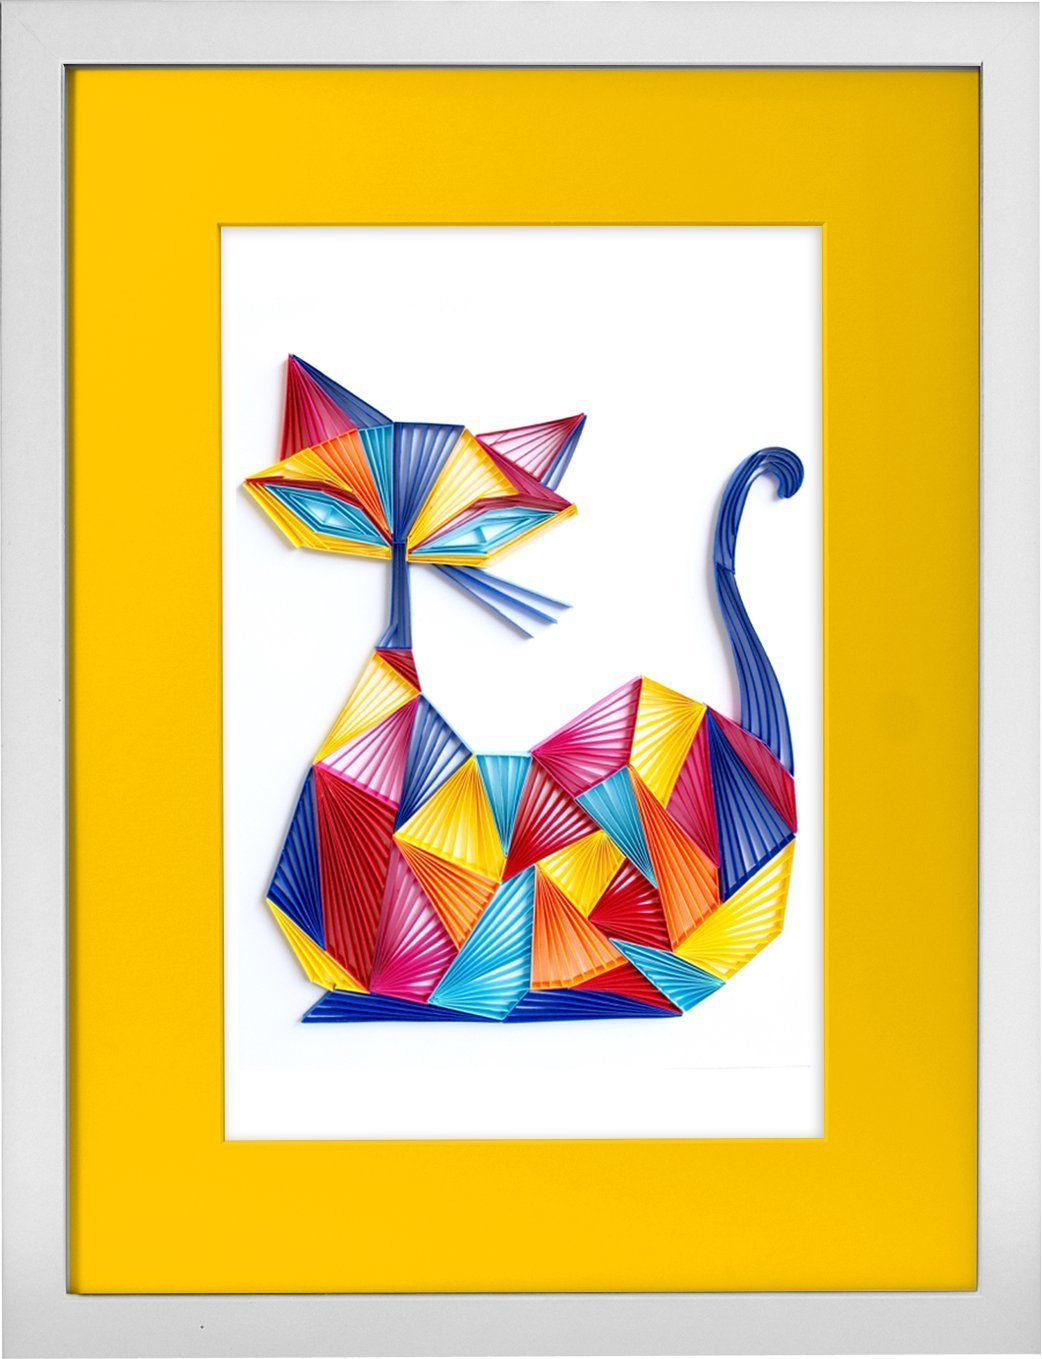 Amazon.com: The Purrfect Companion - Modern Paper Quilled Wall Art ...